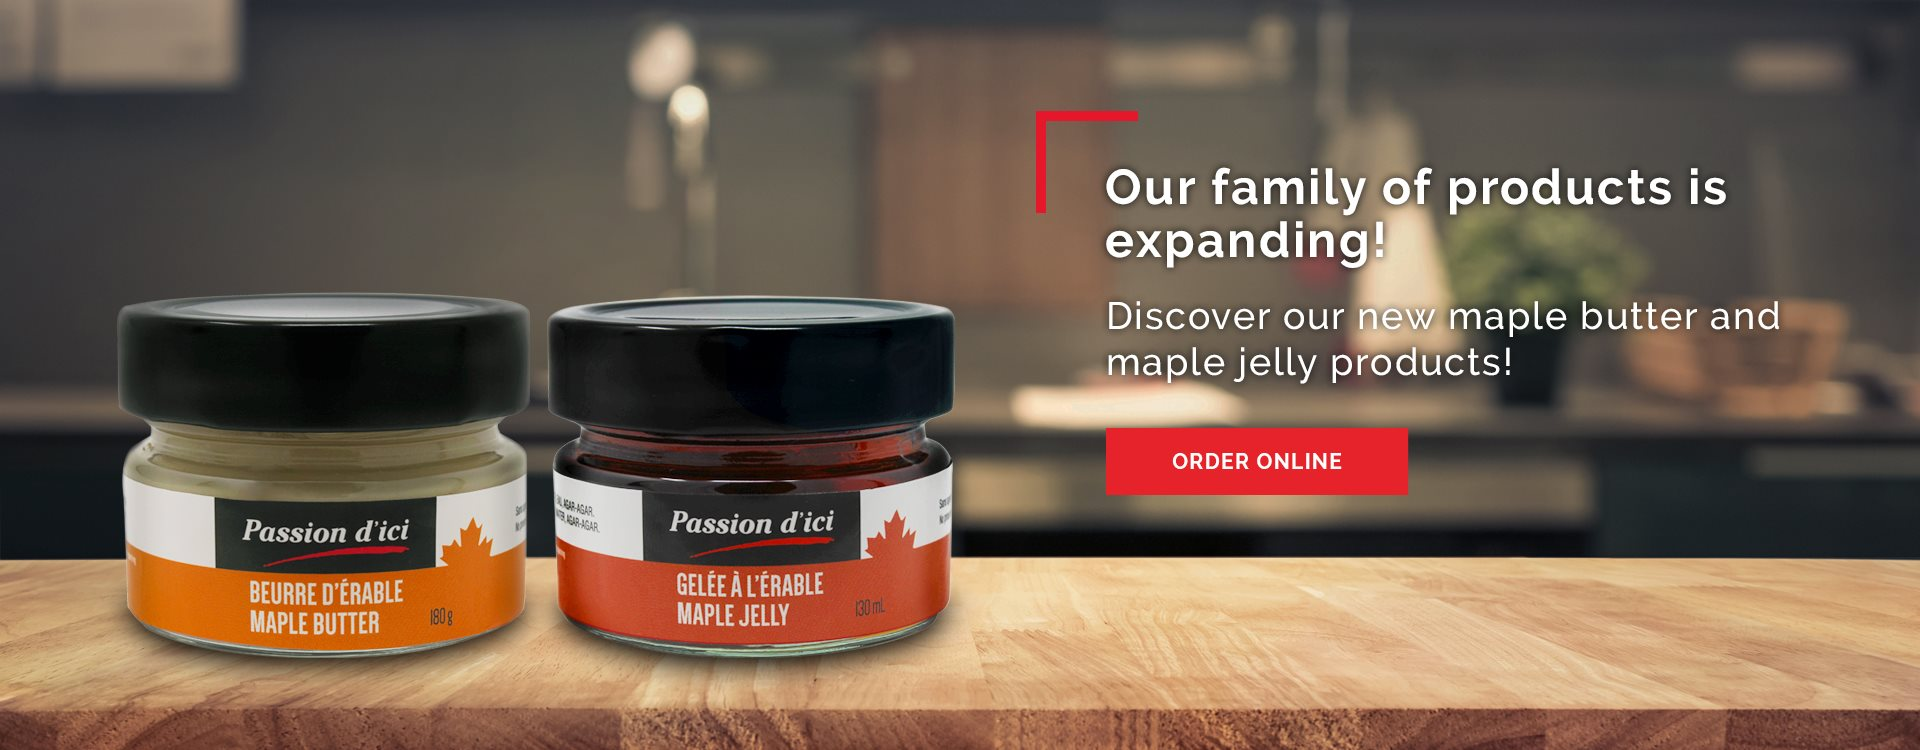 New maple products